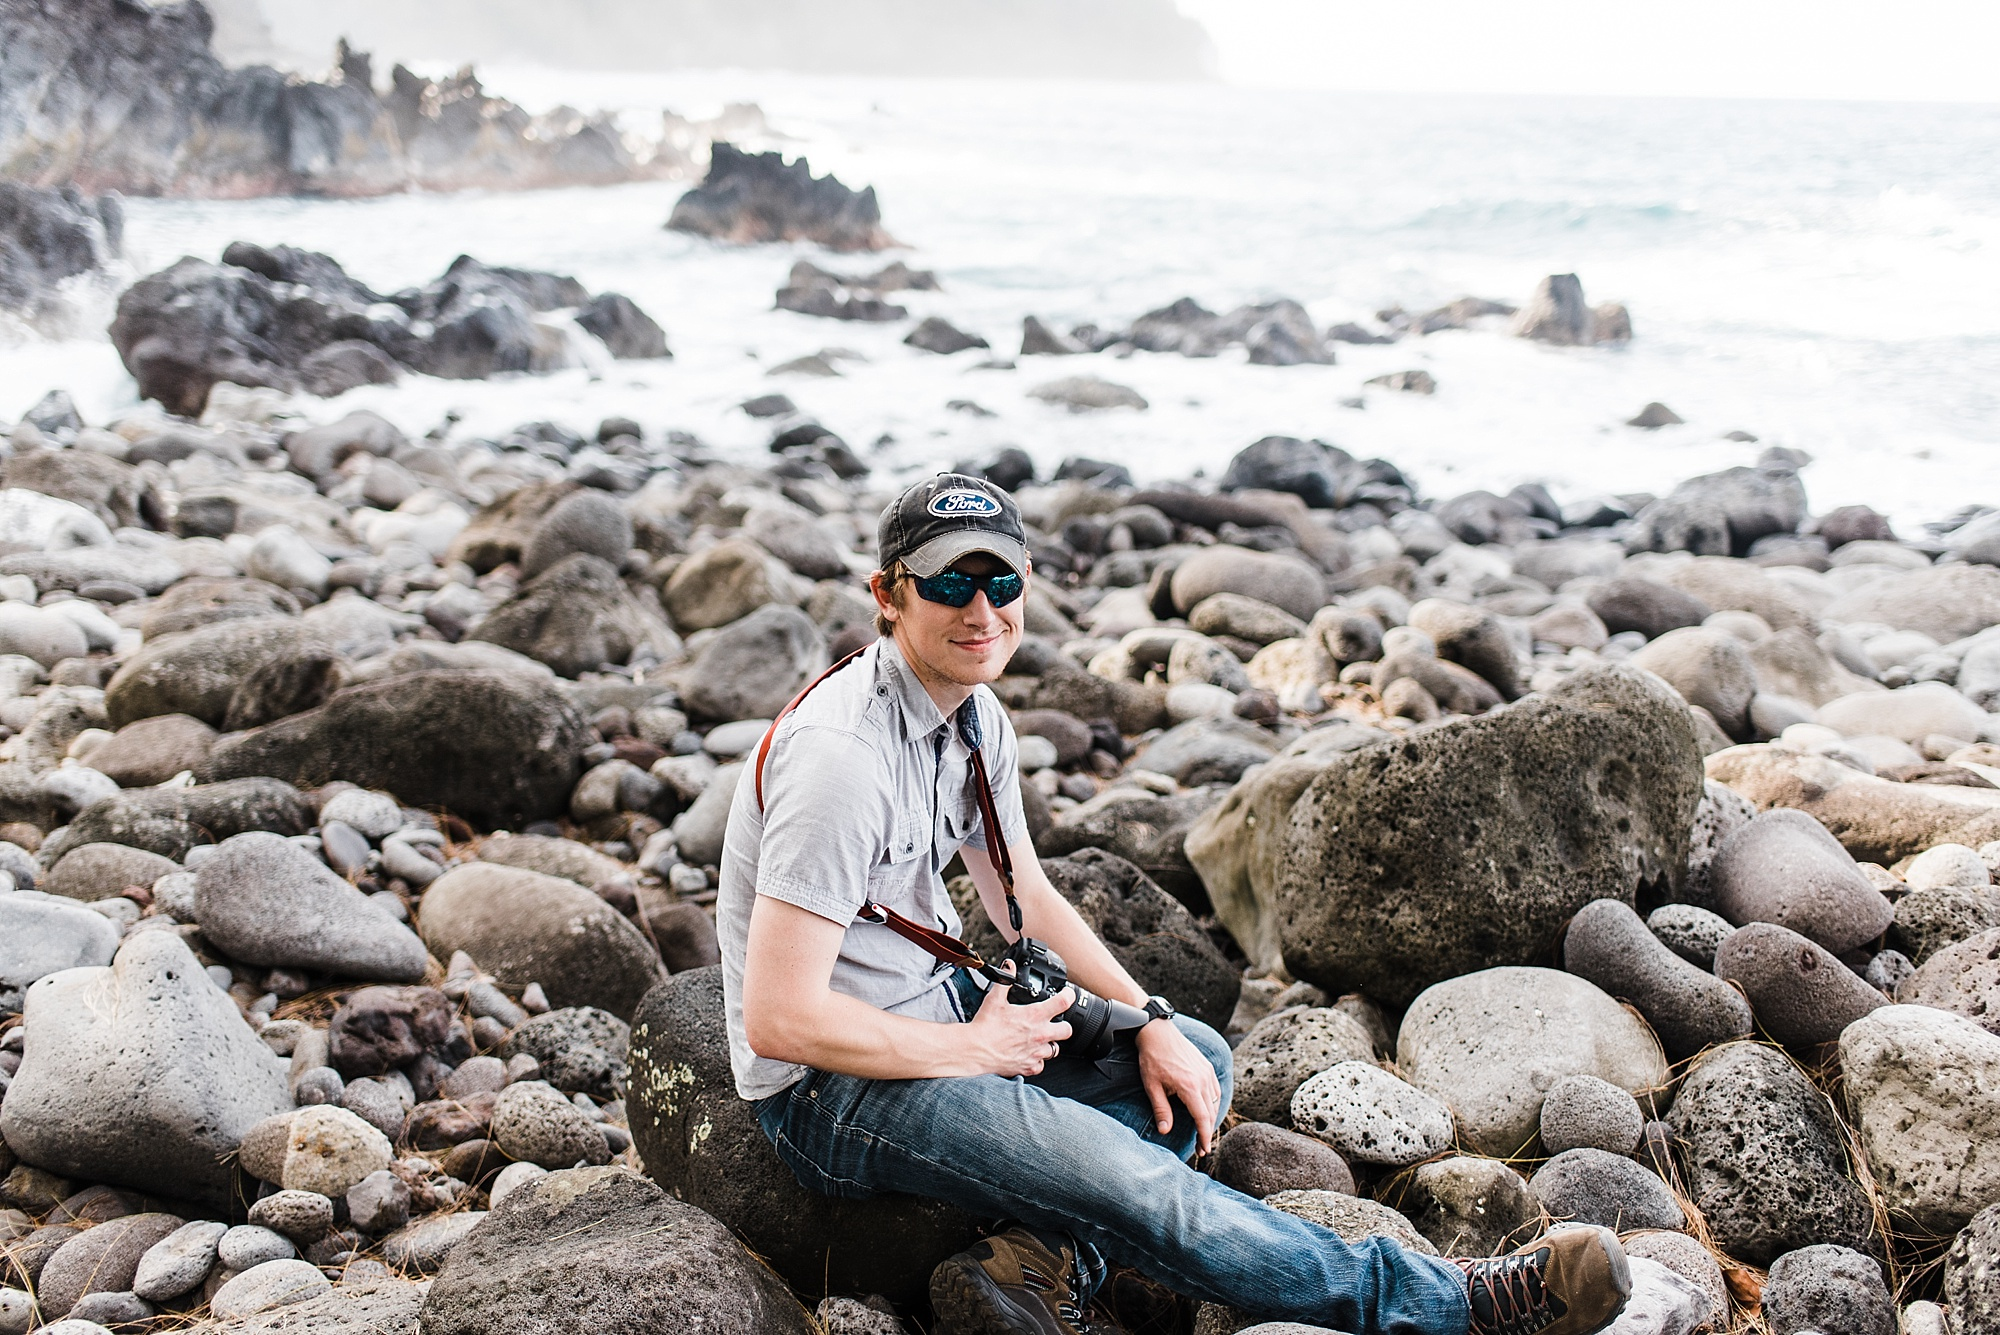 Photo of Devon Young of Forthright Photo on Laupahoehoe Beach taken by Laura Lango of Forthright Photo